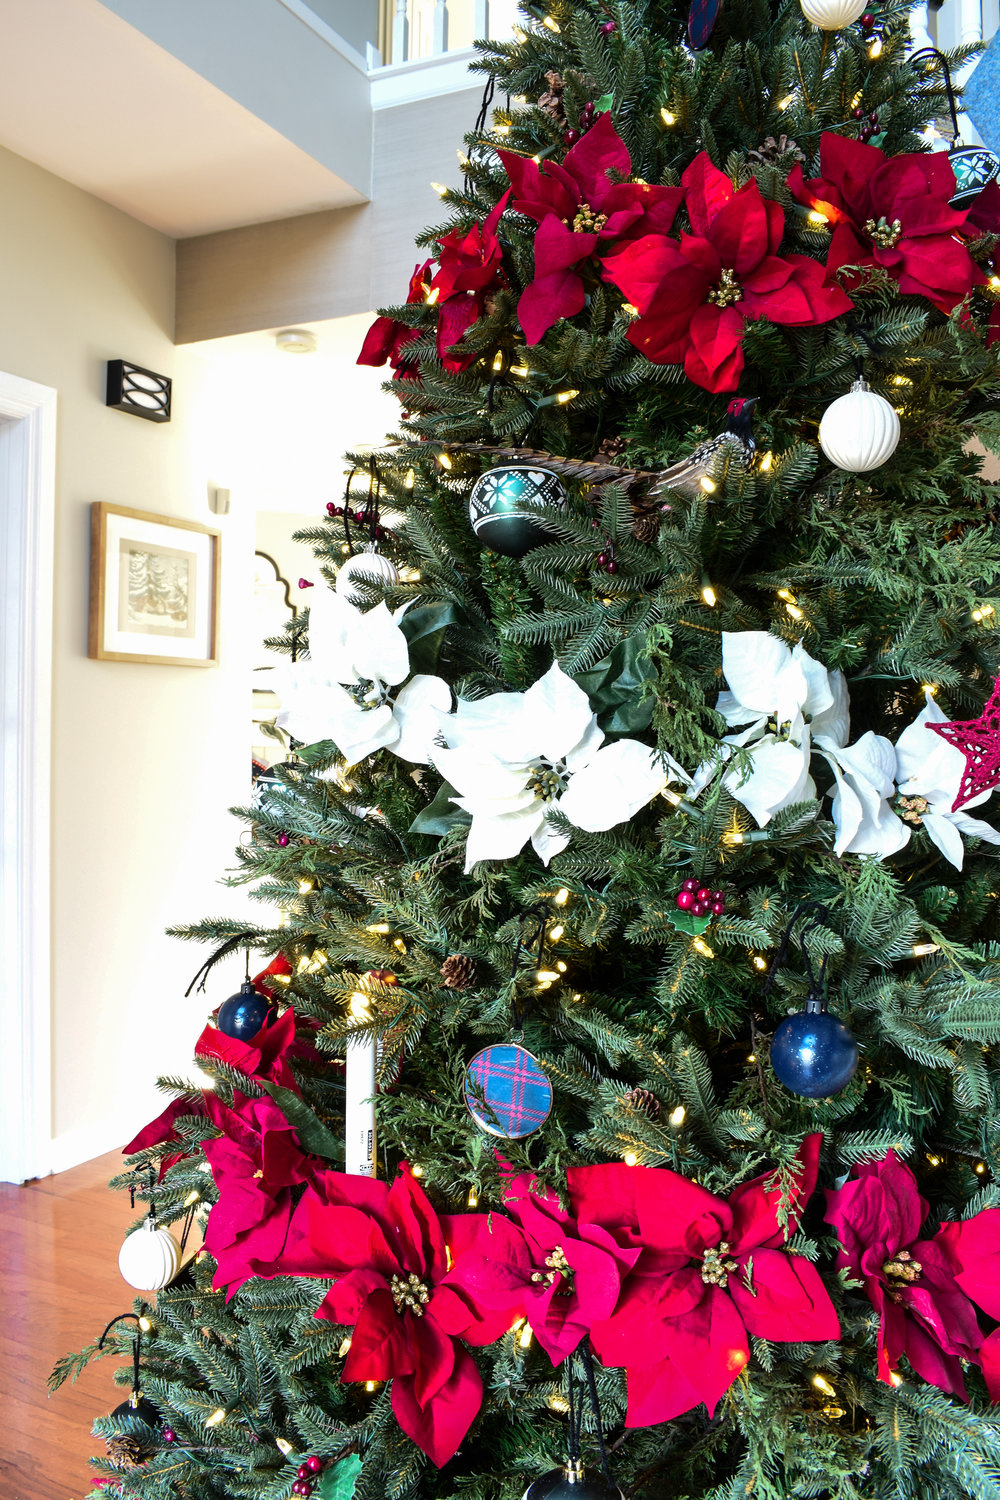 Poinsettia blooms tucked into a Christmas tree make a huge impact as a garland. You don't even have to string them! Just tuck them in a line and it'll look like a garland! #christmasdecor #traditionalchristmas #redandnavychristmas